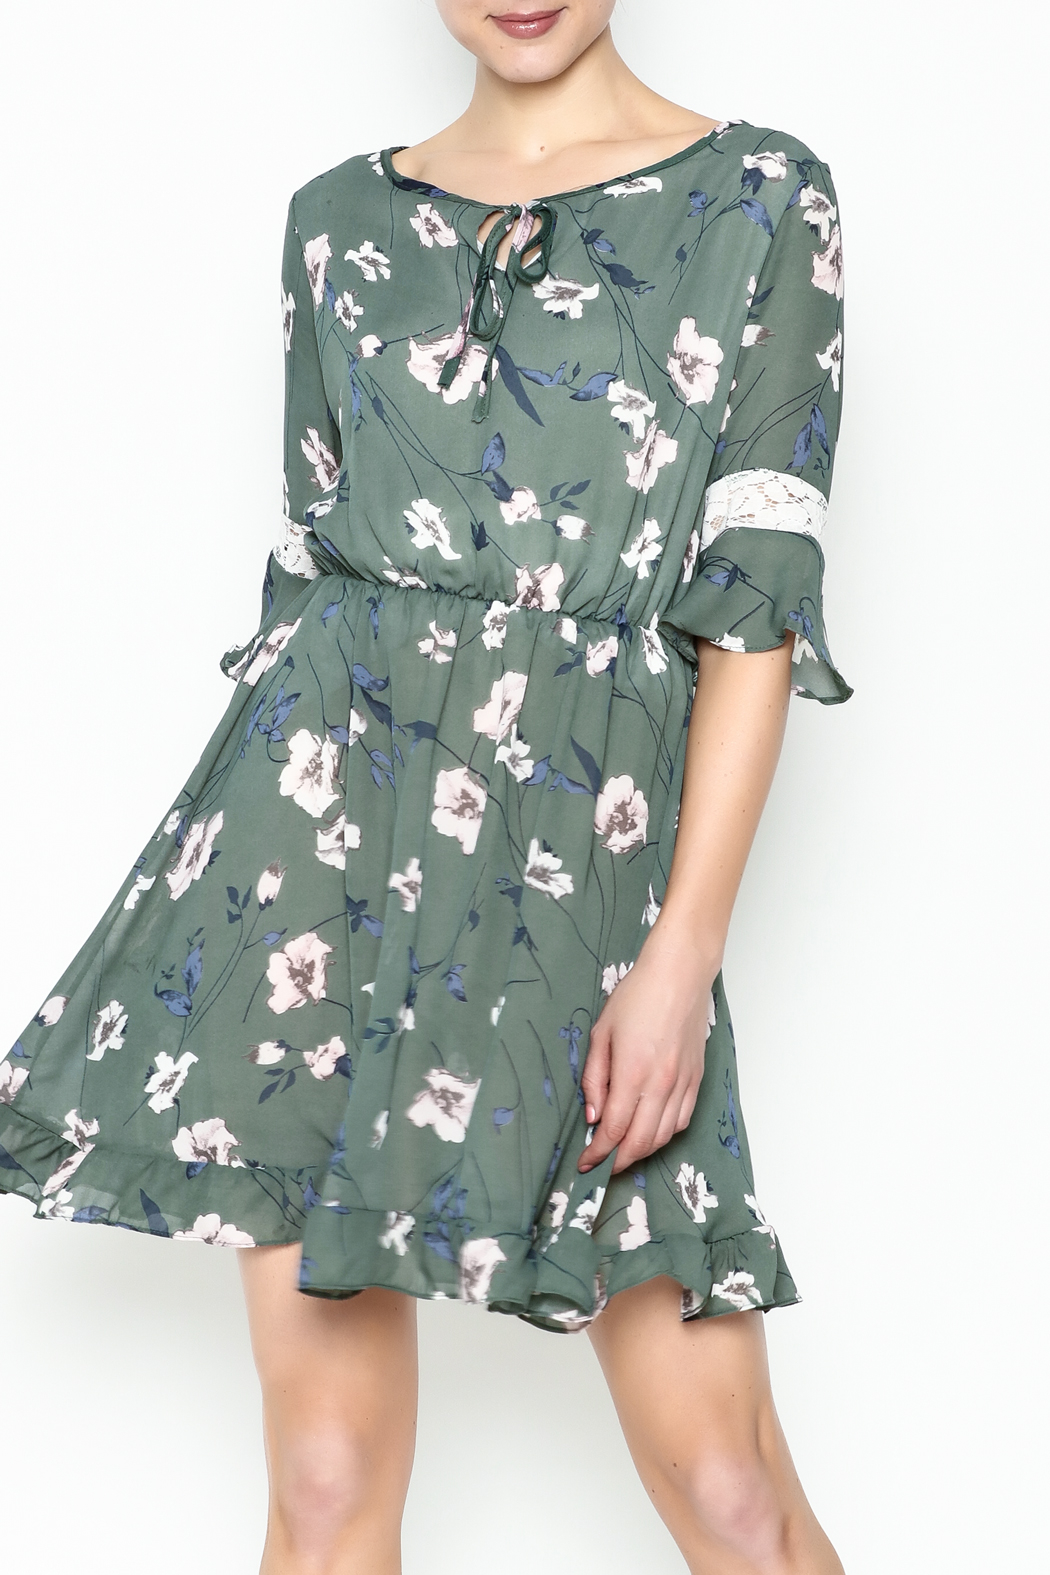 Fashion Pickle Floral Lace Printed Dress - Main Image